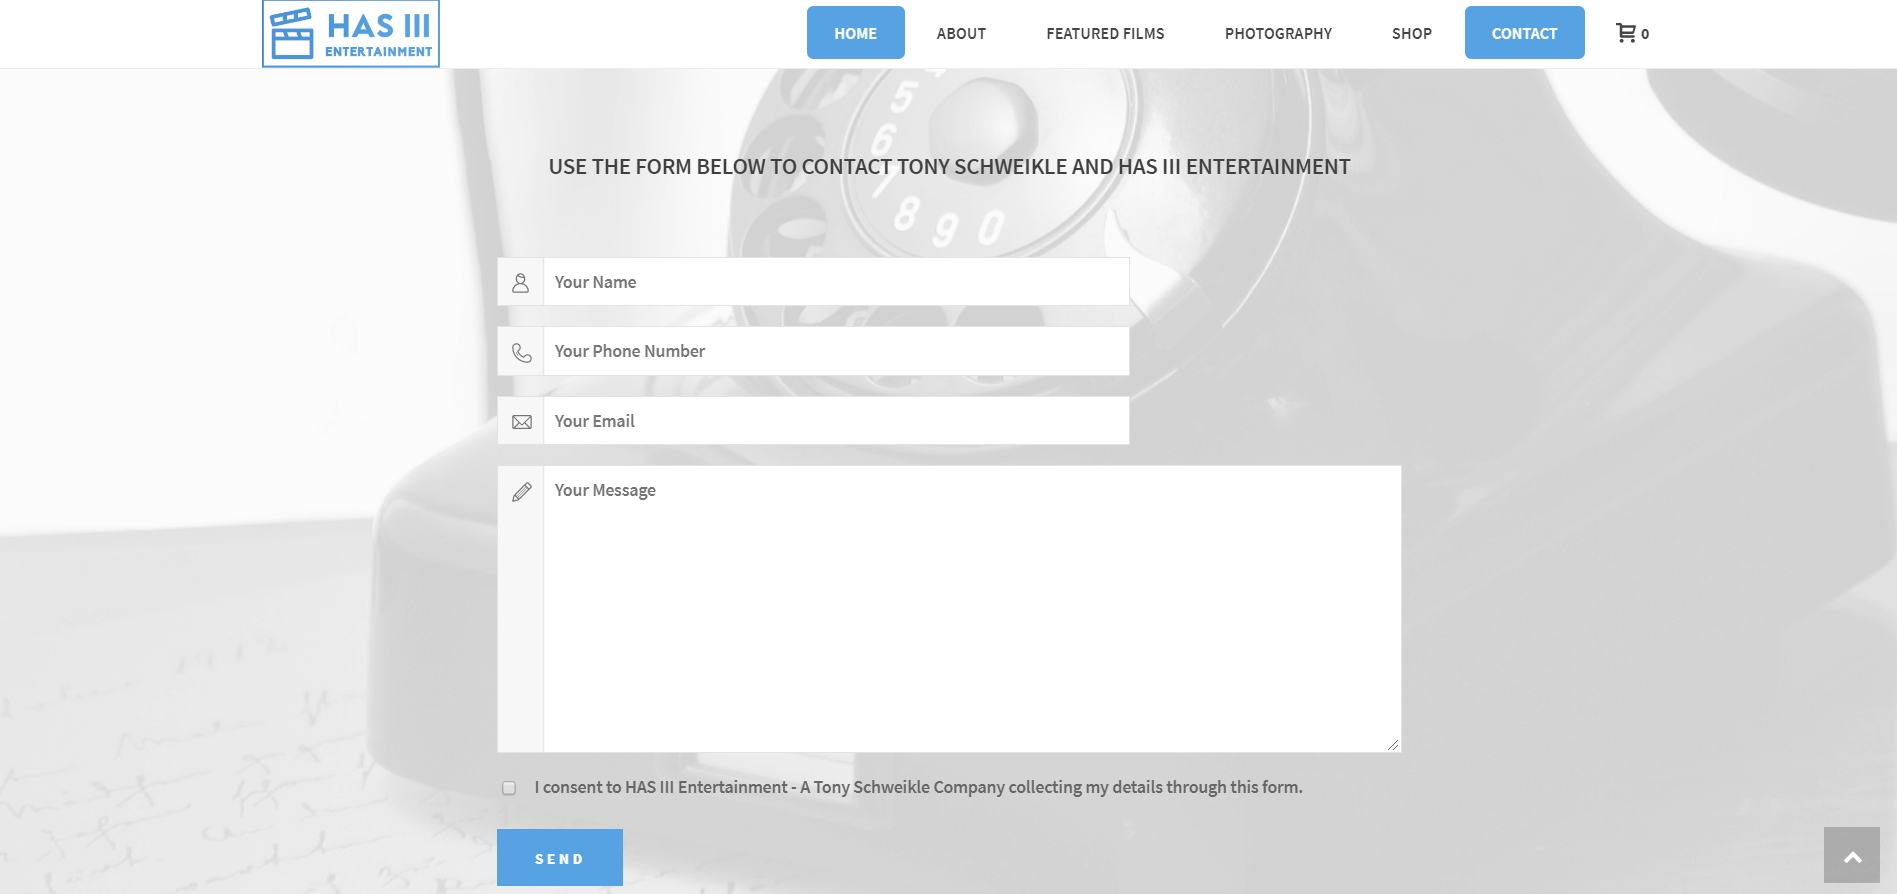 has iii entertainment contact page